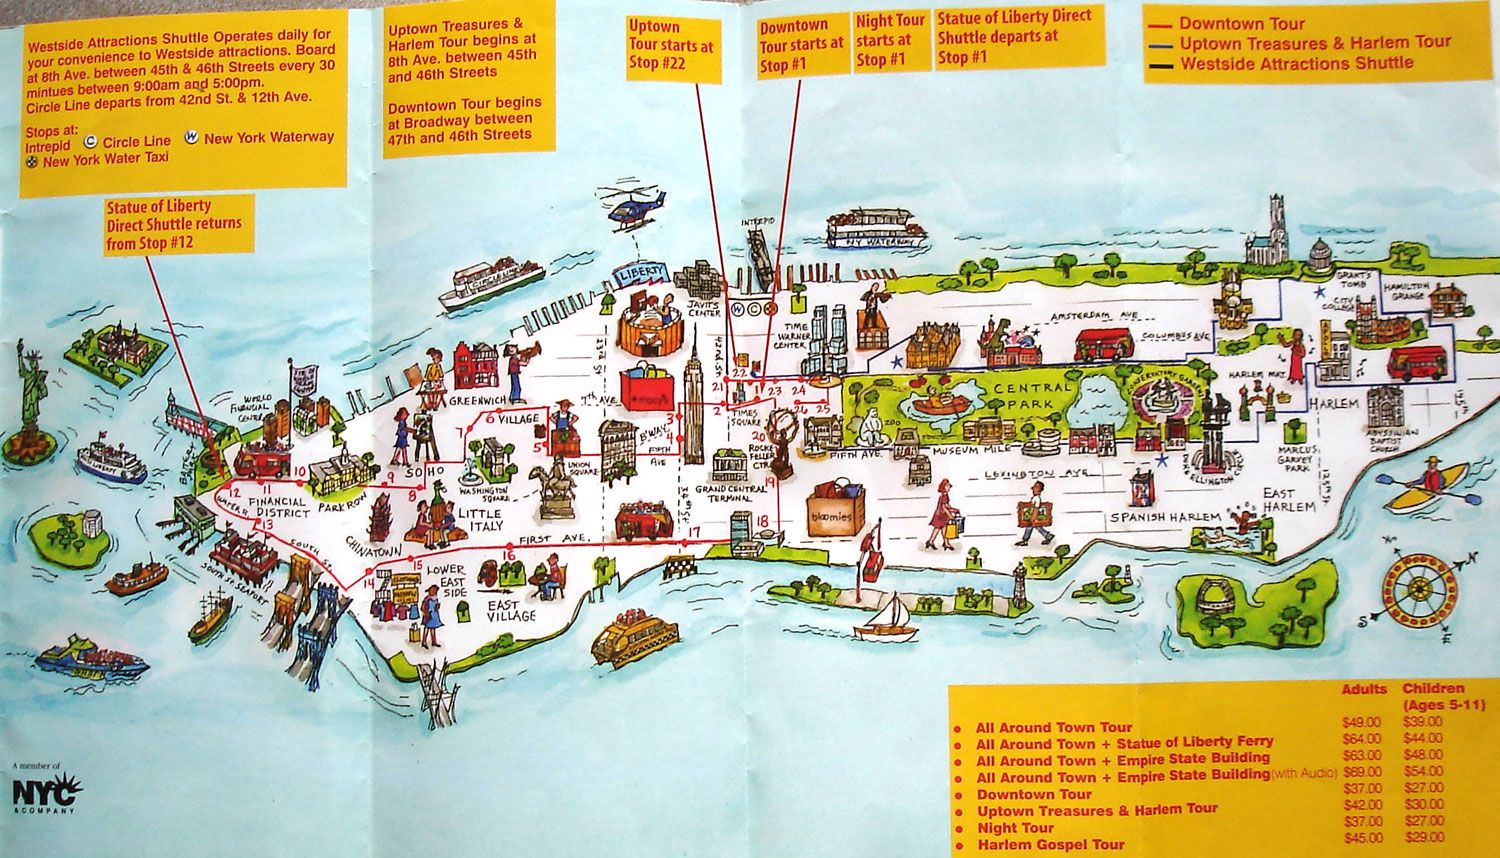 Map Of New York City Attractions Printable | Manhattan Citysites - Printable Tourist Map Of Manhattan